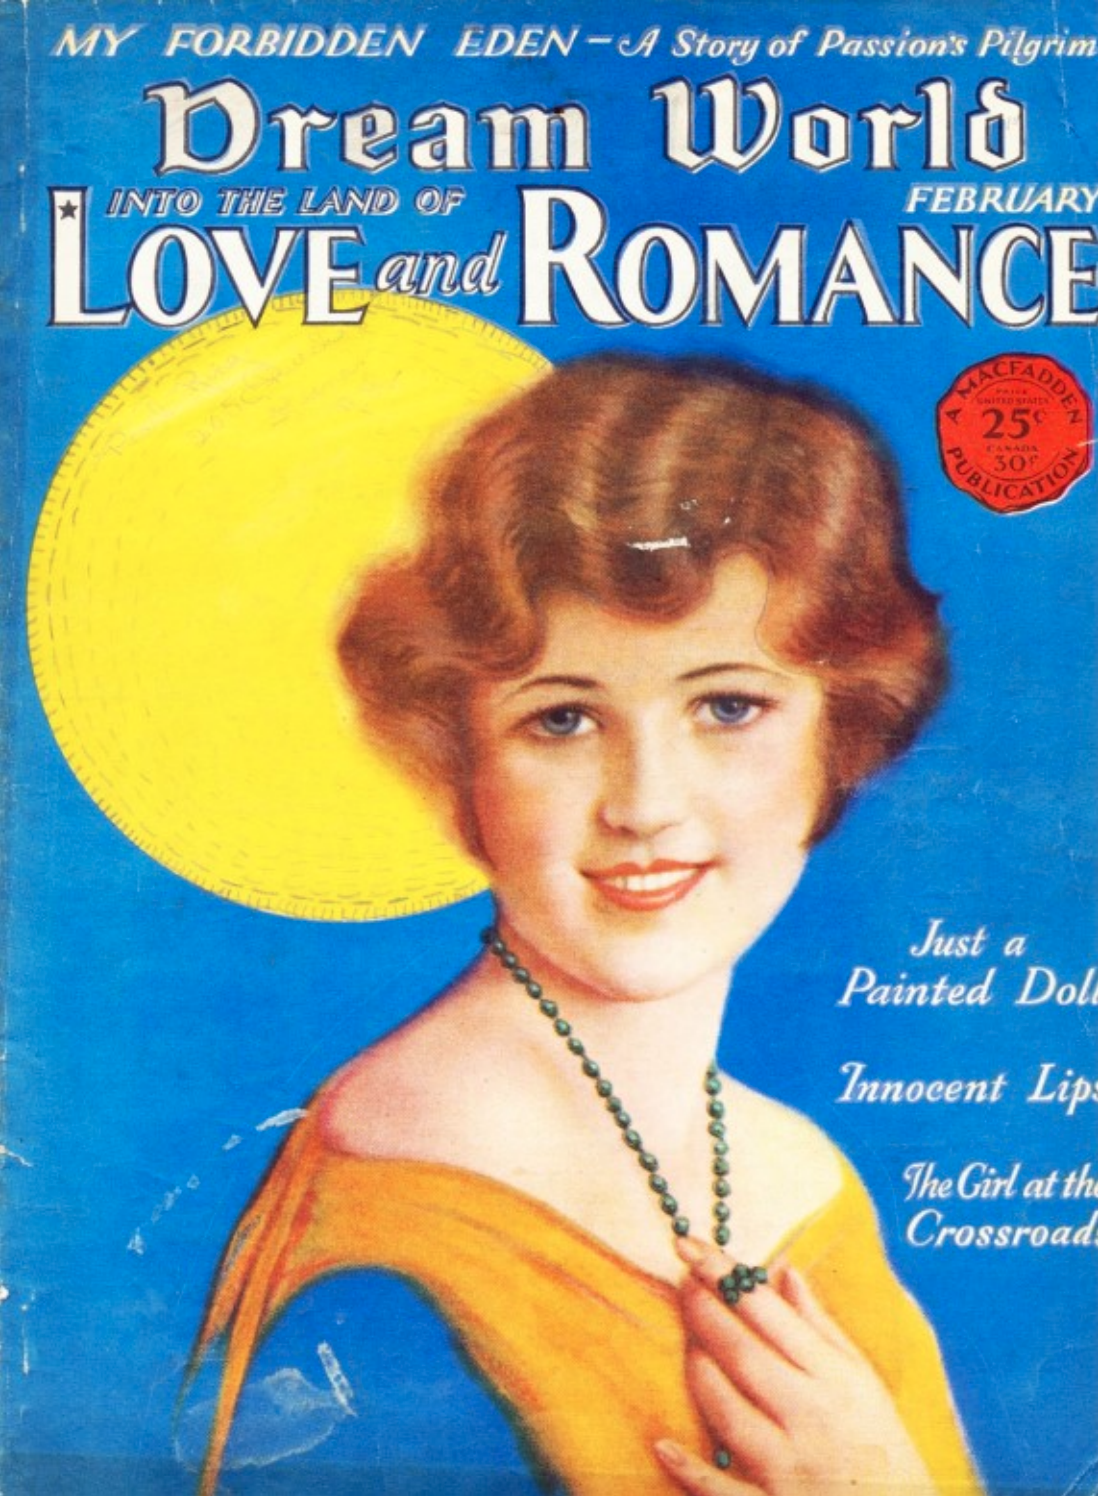 The painting as it appeared on the February 1930 cover of Dream World magazine (NOT INCLUDED IN SALE)